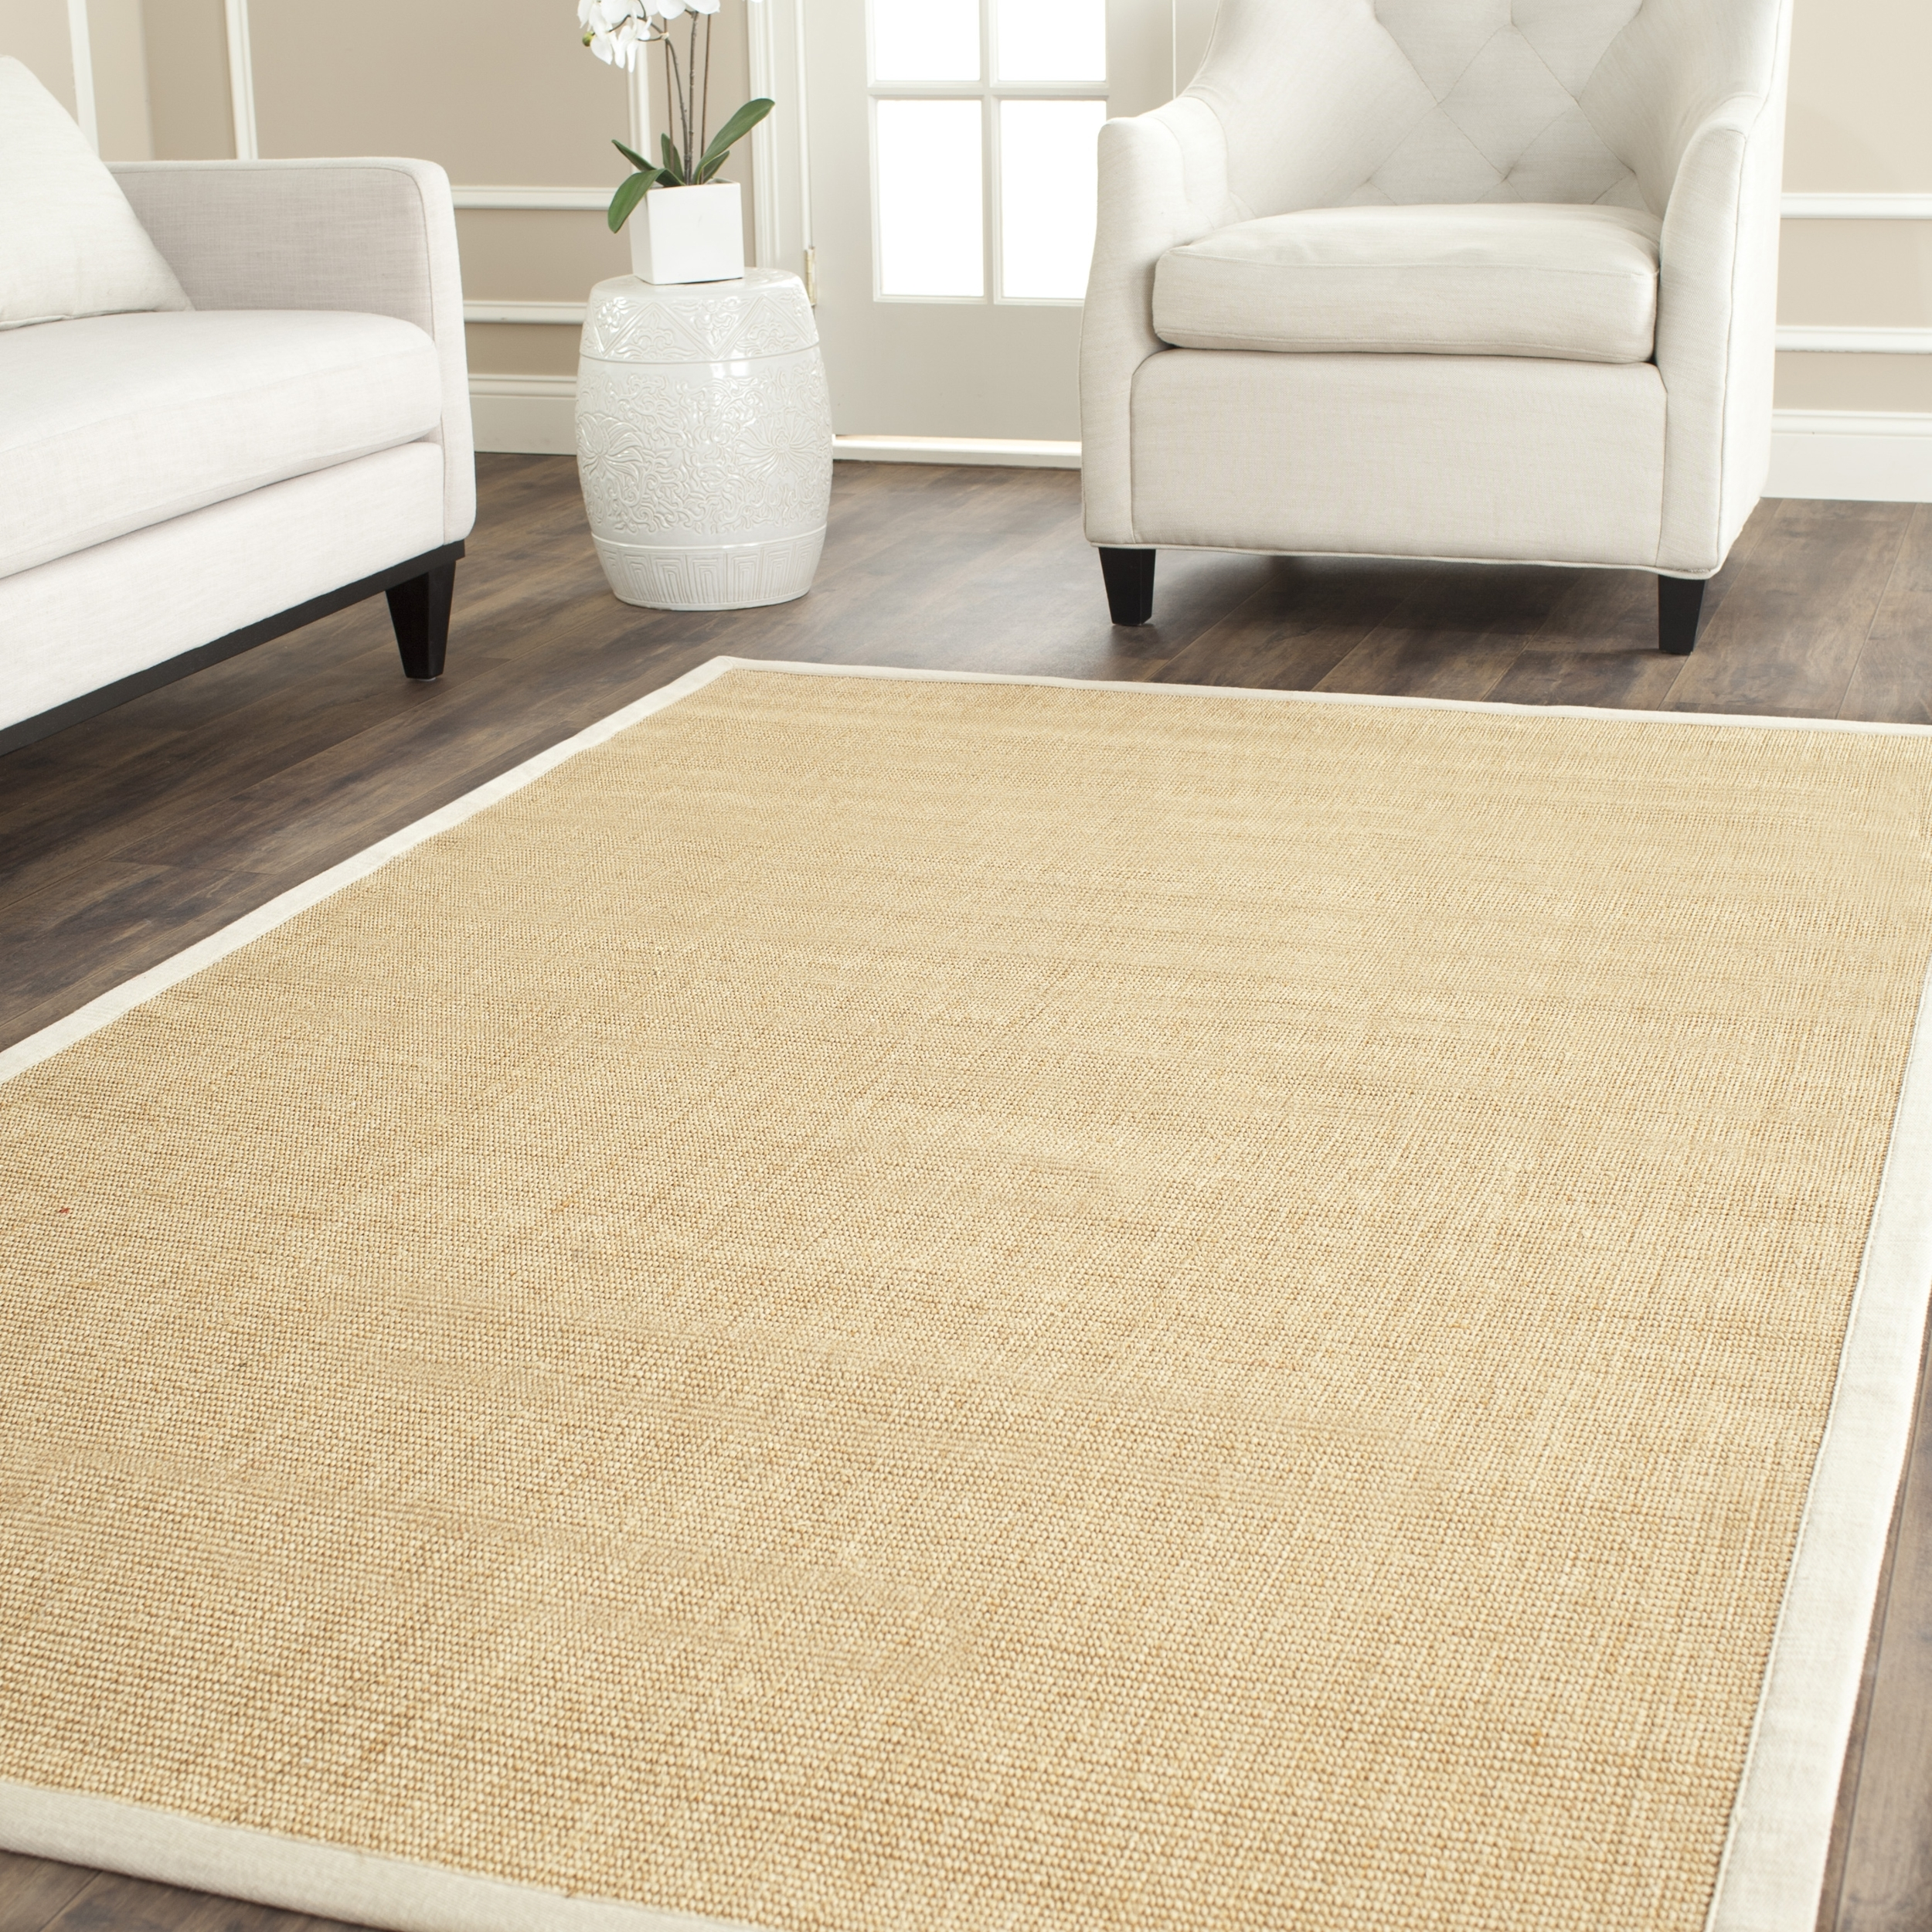 Customized Rugs In Dubai Across Uae Call 0566 00 9626 Throughout Customized Rugs (Image 7 of 15)